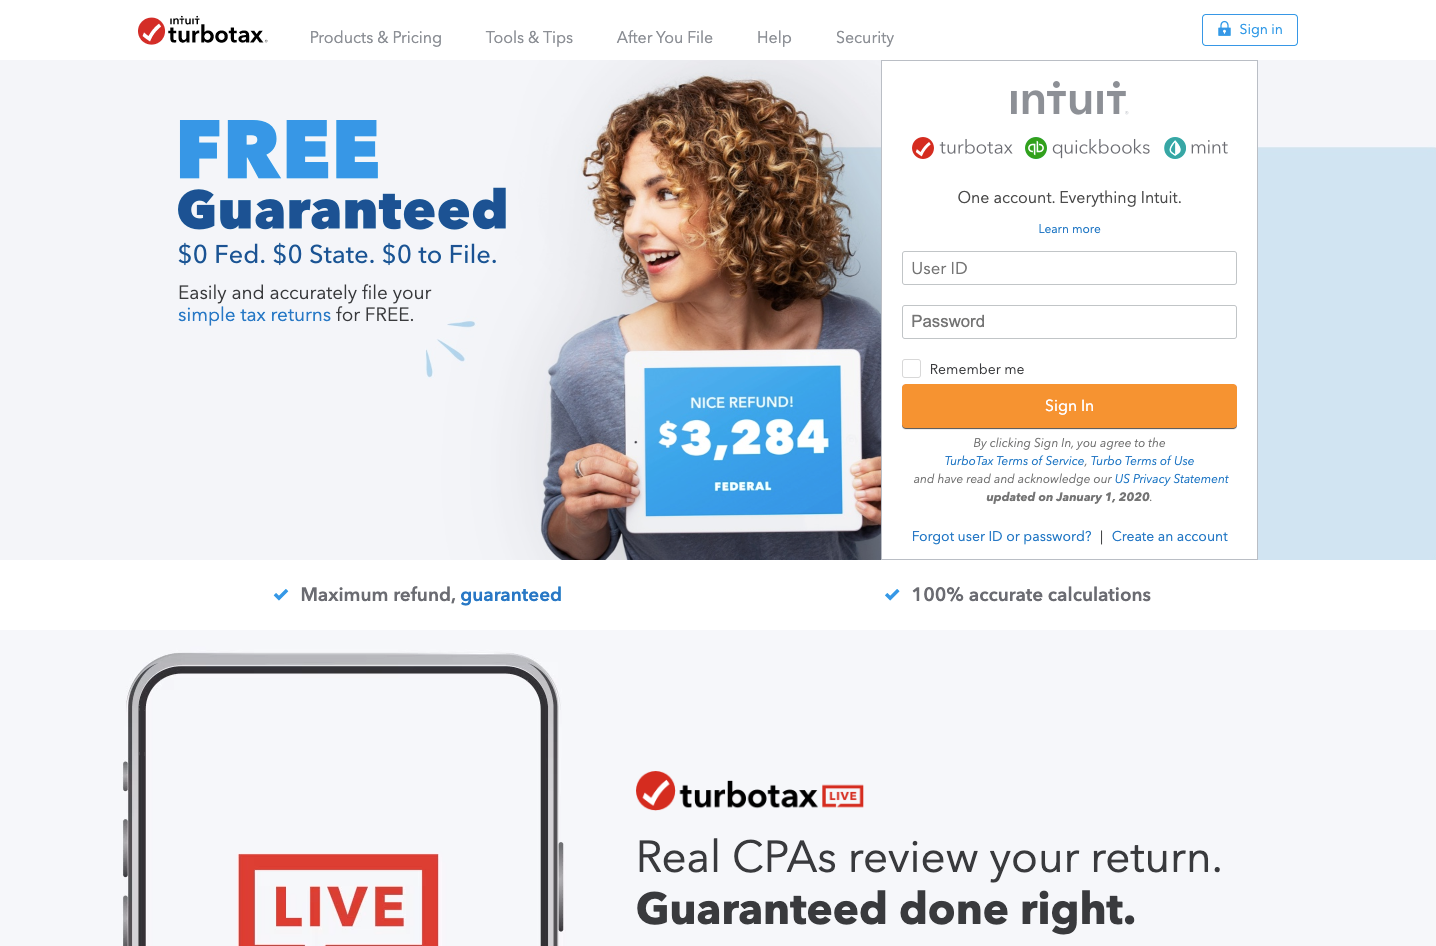 turbotax website homepage screenshot